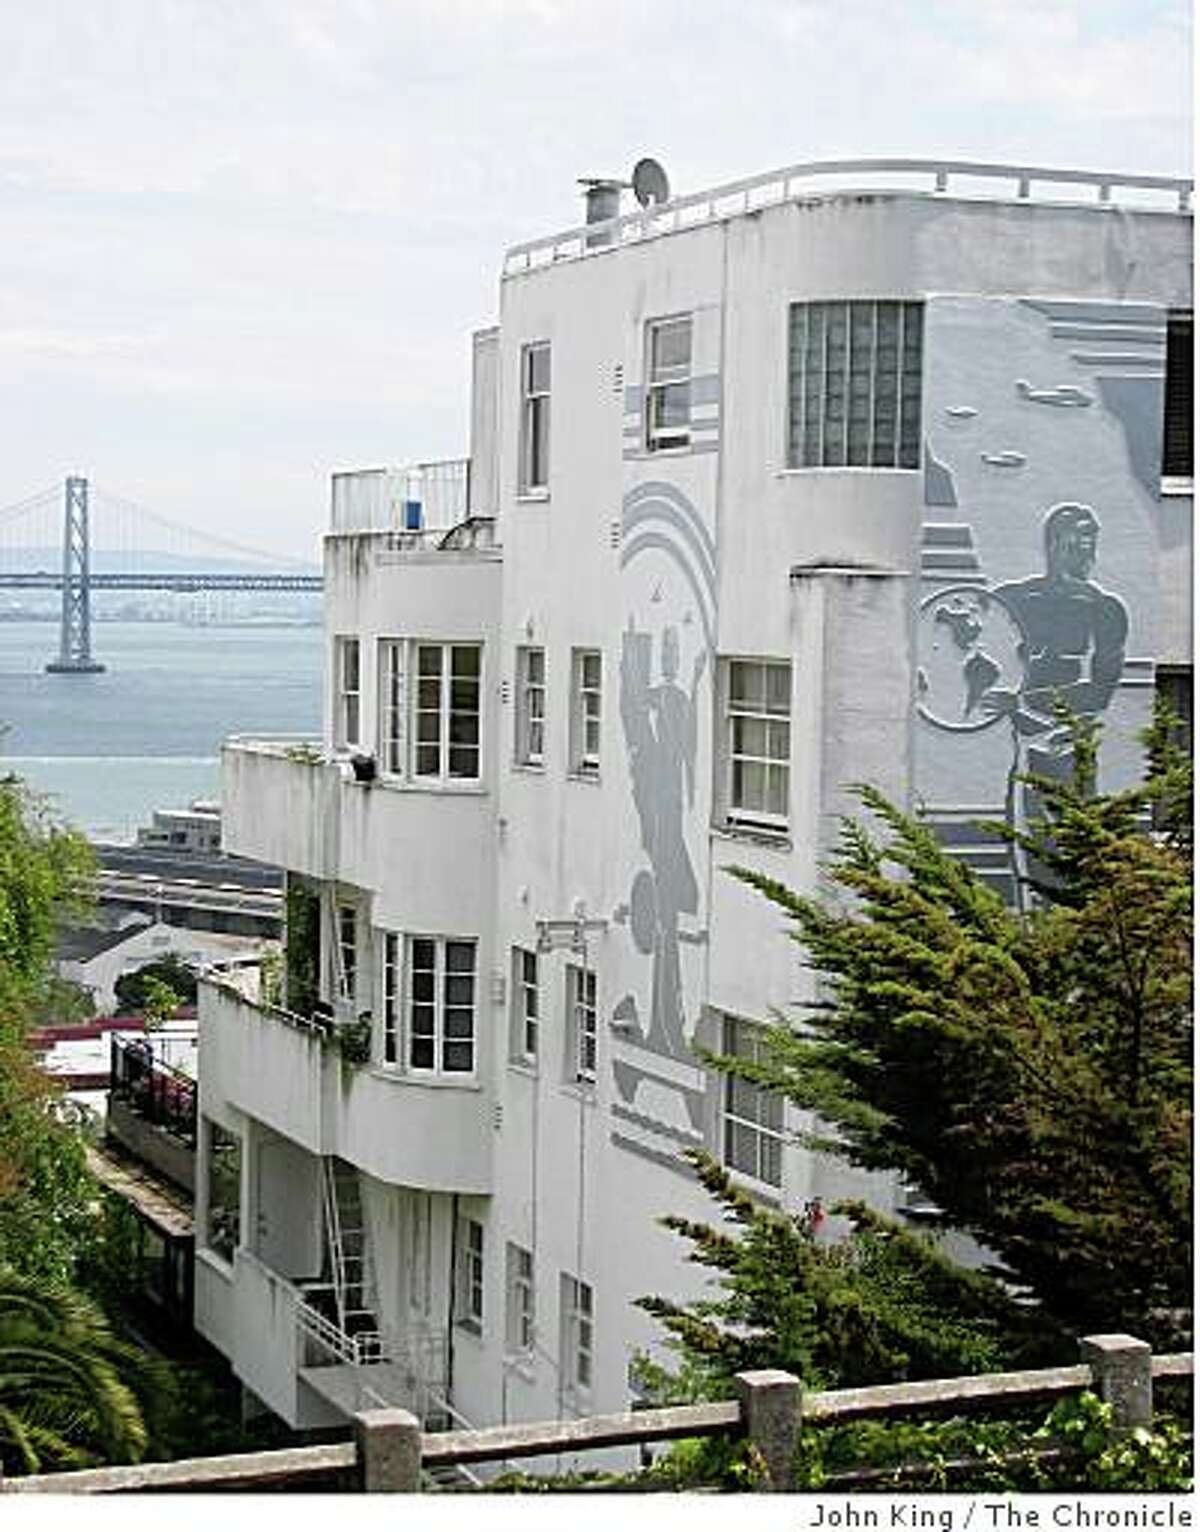 And here's 1360 Montgomery today, perched on the steep slopes of Telegraph Hill. The bas relief-style design is still visible on the exterior and the view is just as good too.